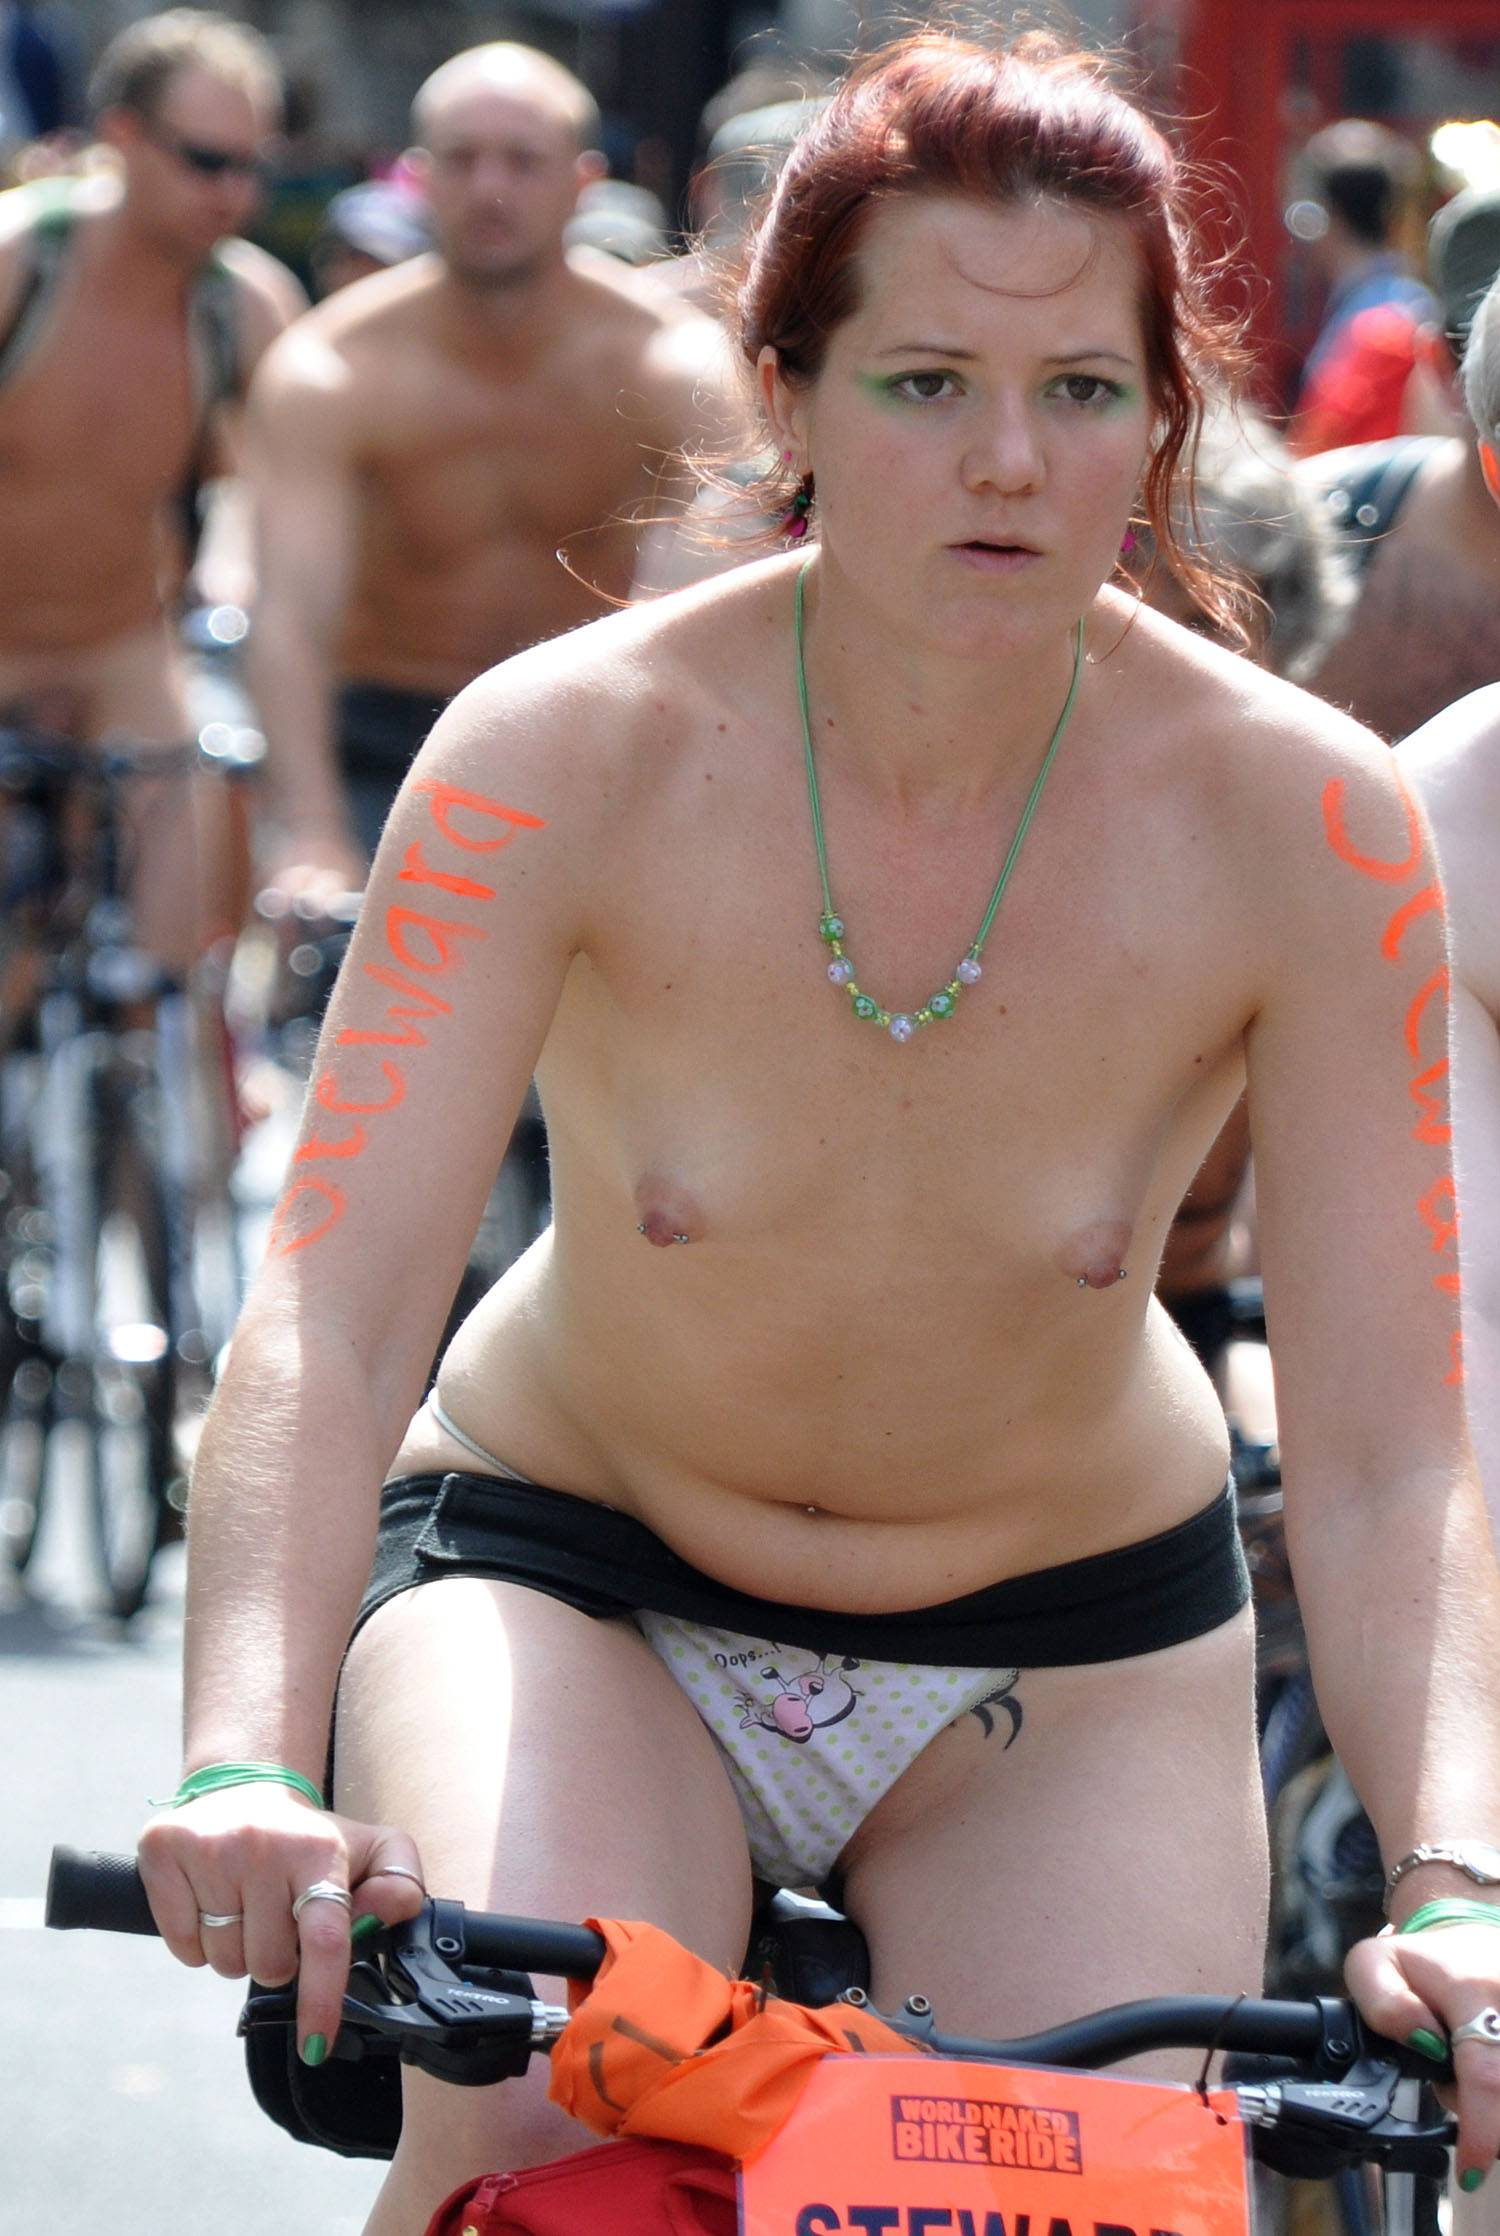 Nudist Gallery World Naked Bike Ride (WNBR) 2009 - 1